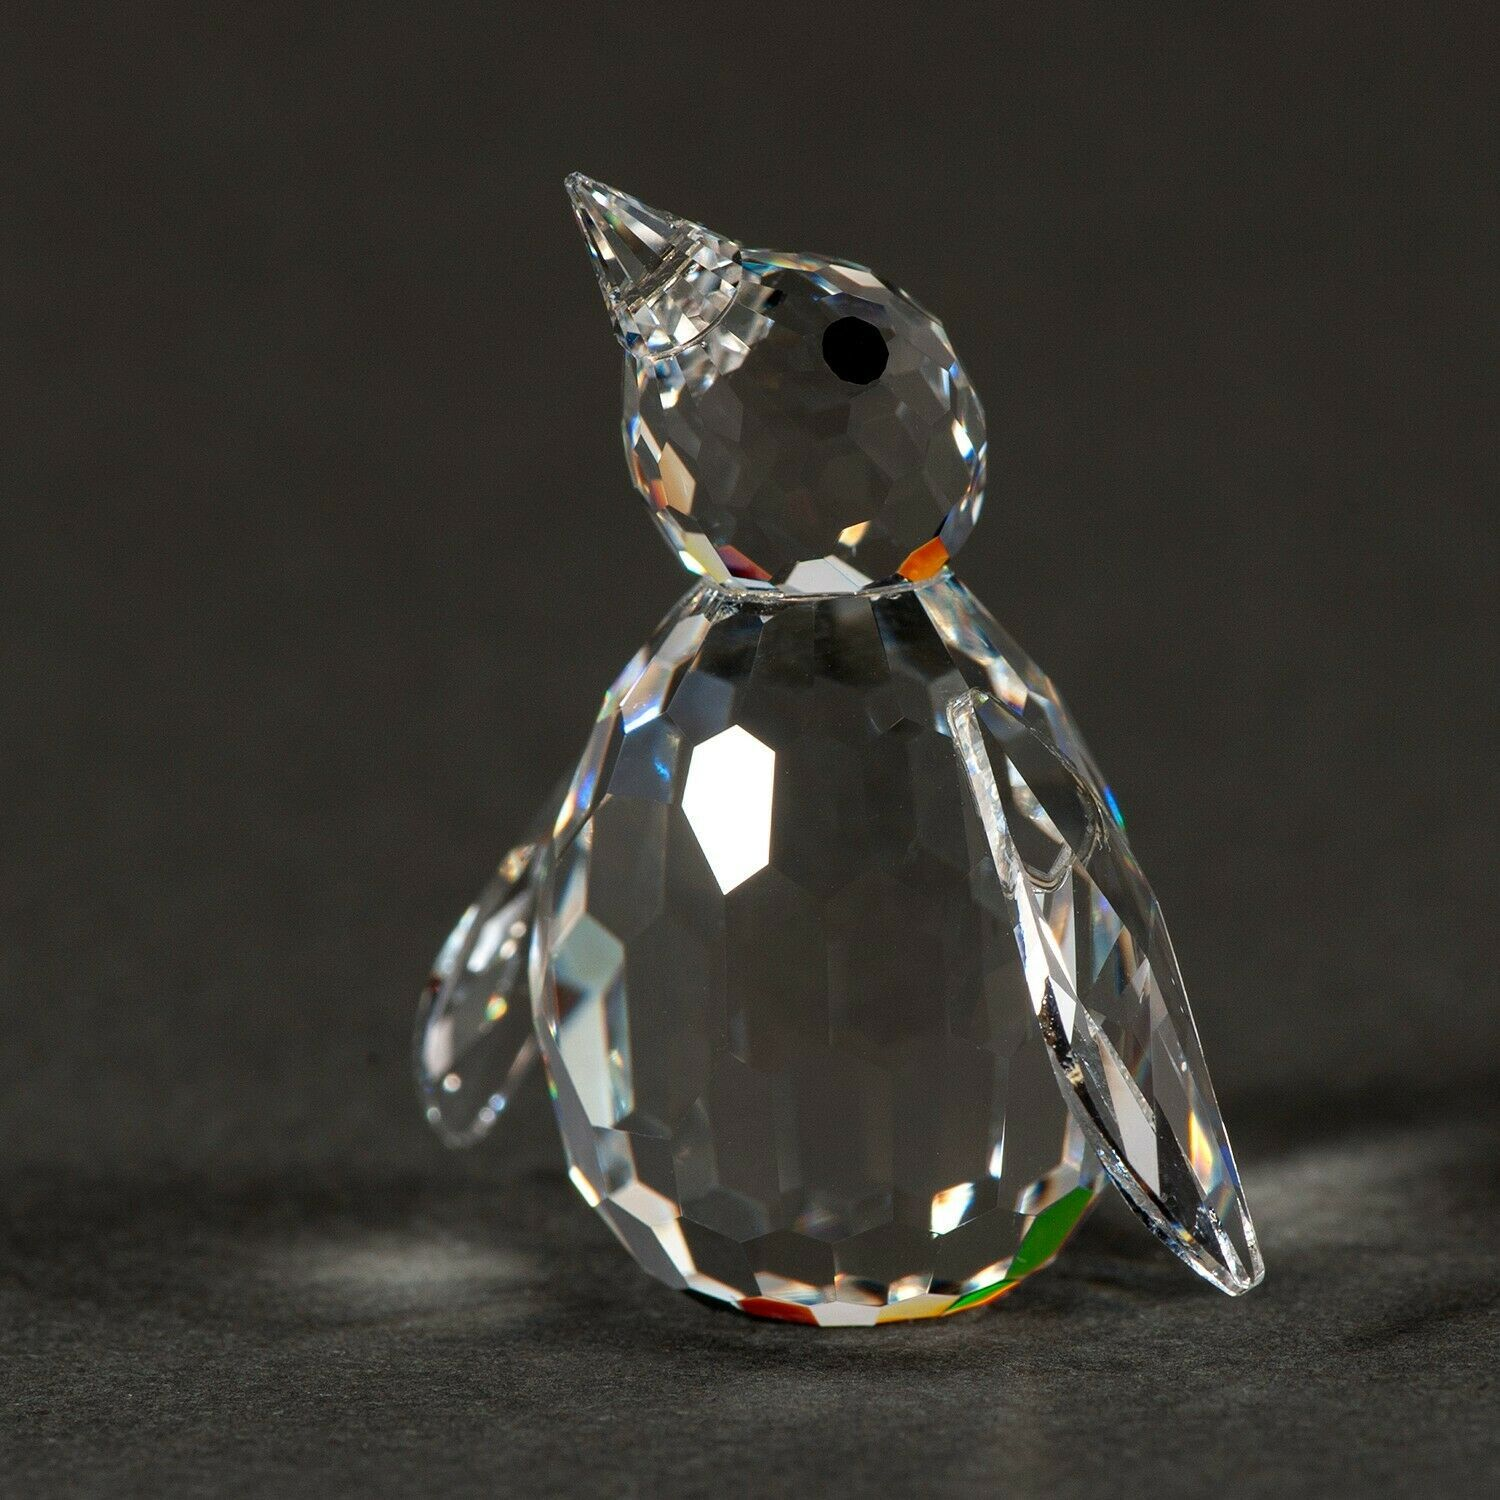 Swarovski Silver Crystal PENGUIN Figurine w/COA and